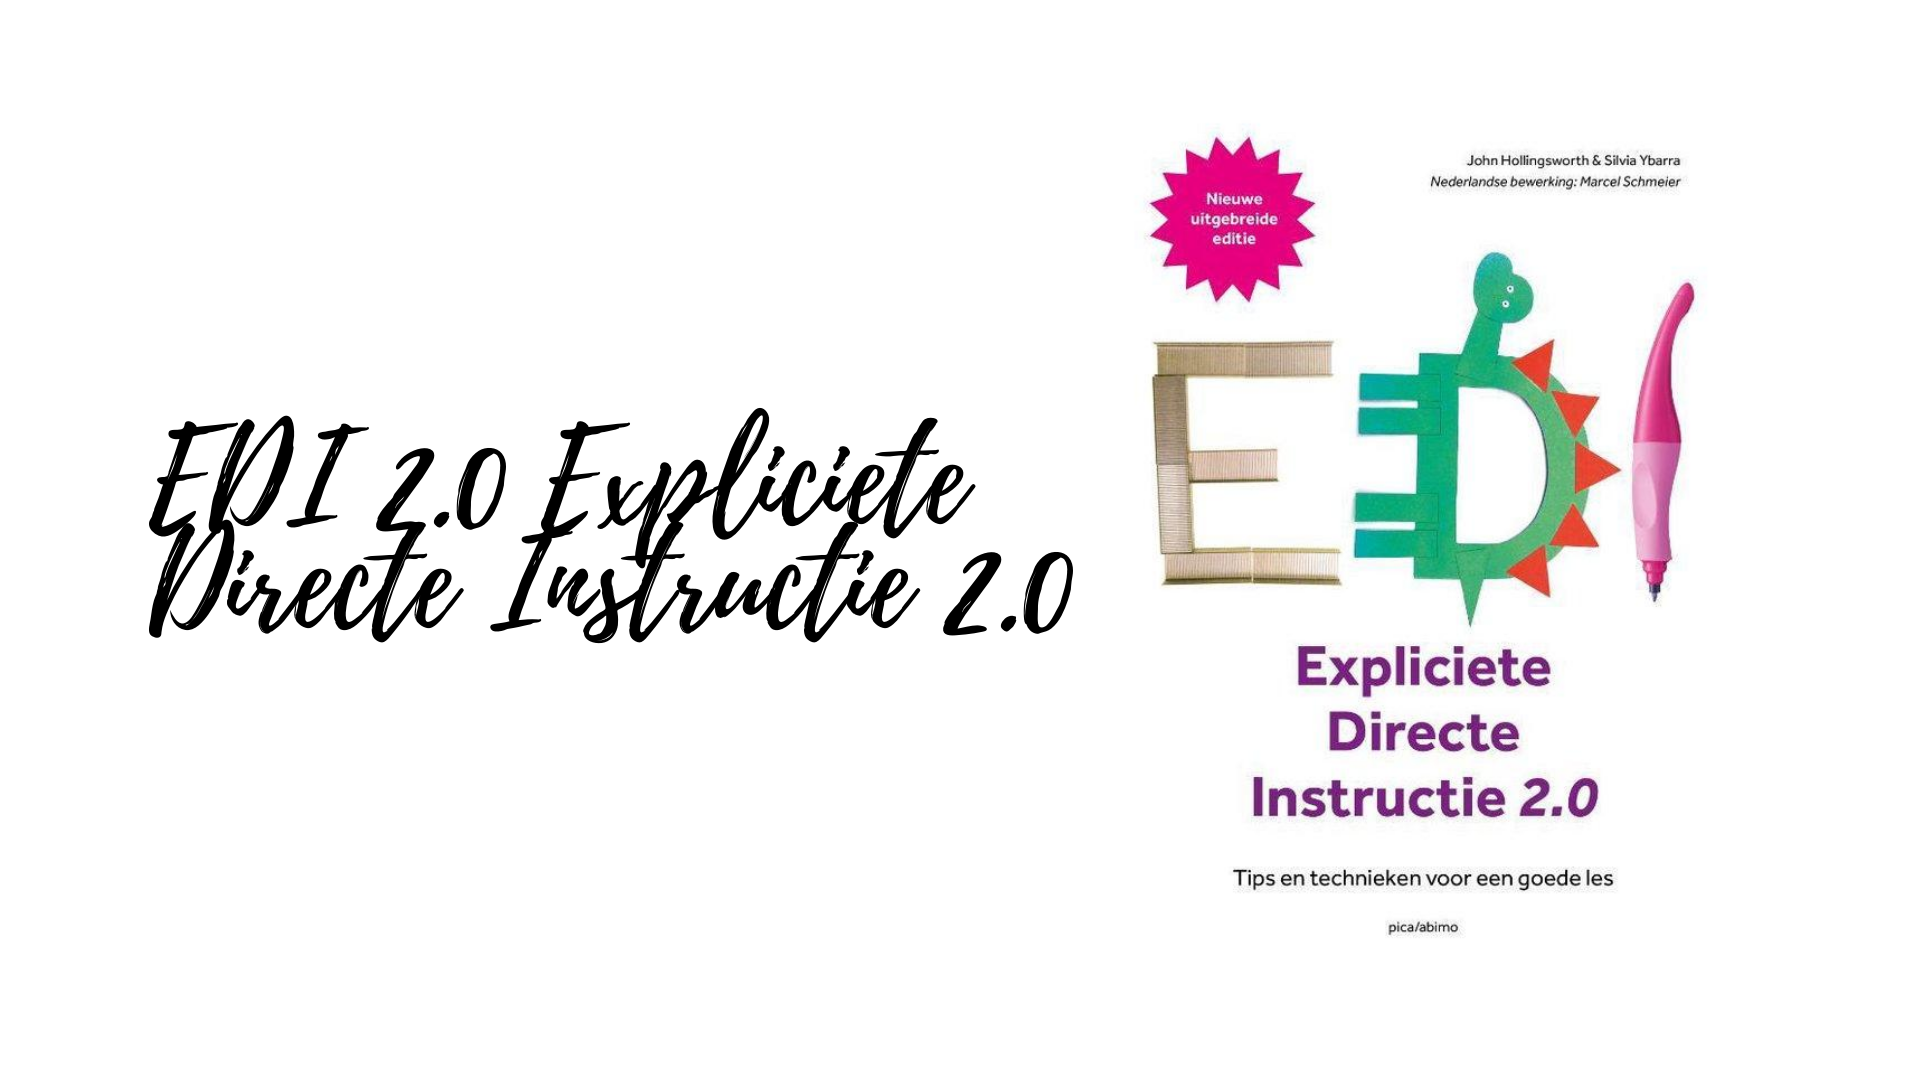 EDI 2.0 Expliciete Directe Instructie 2.0